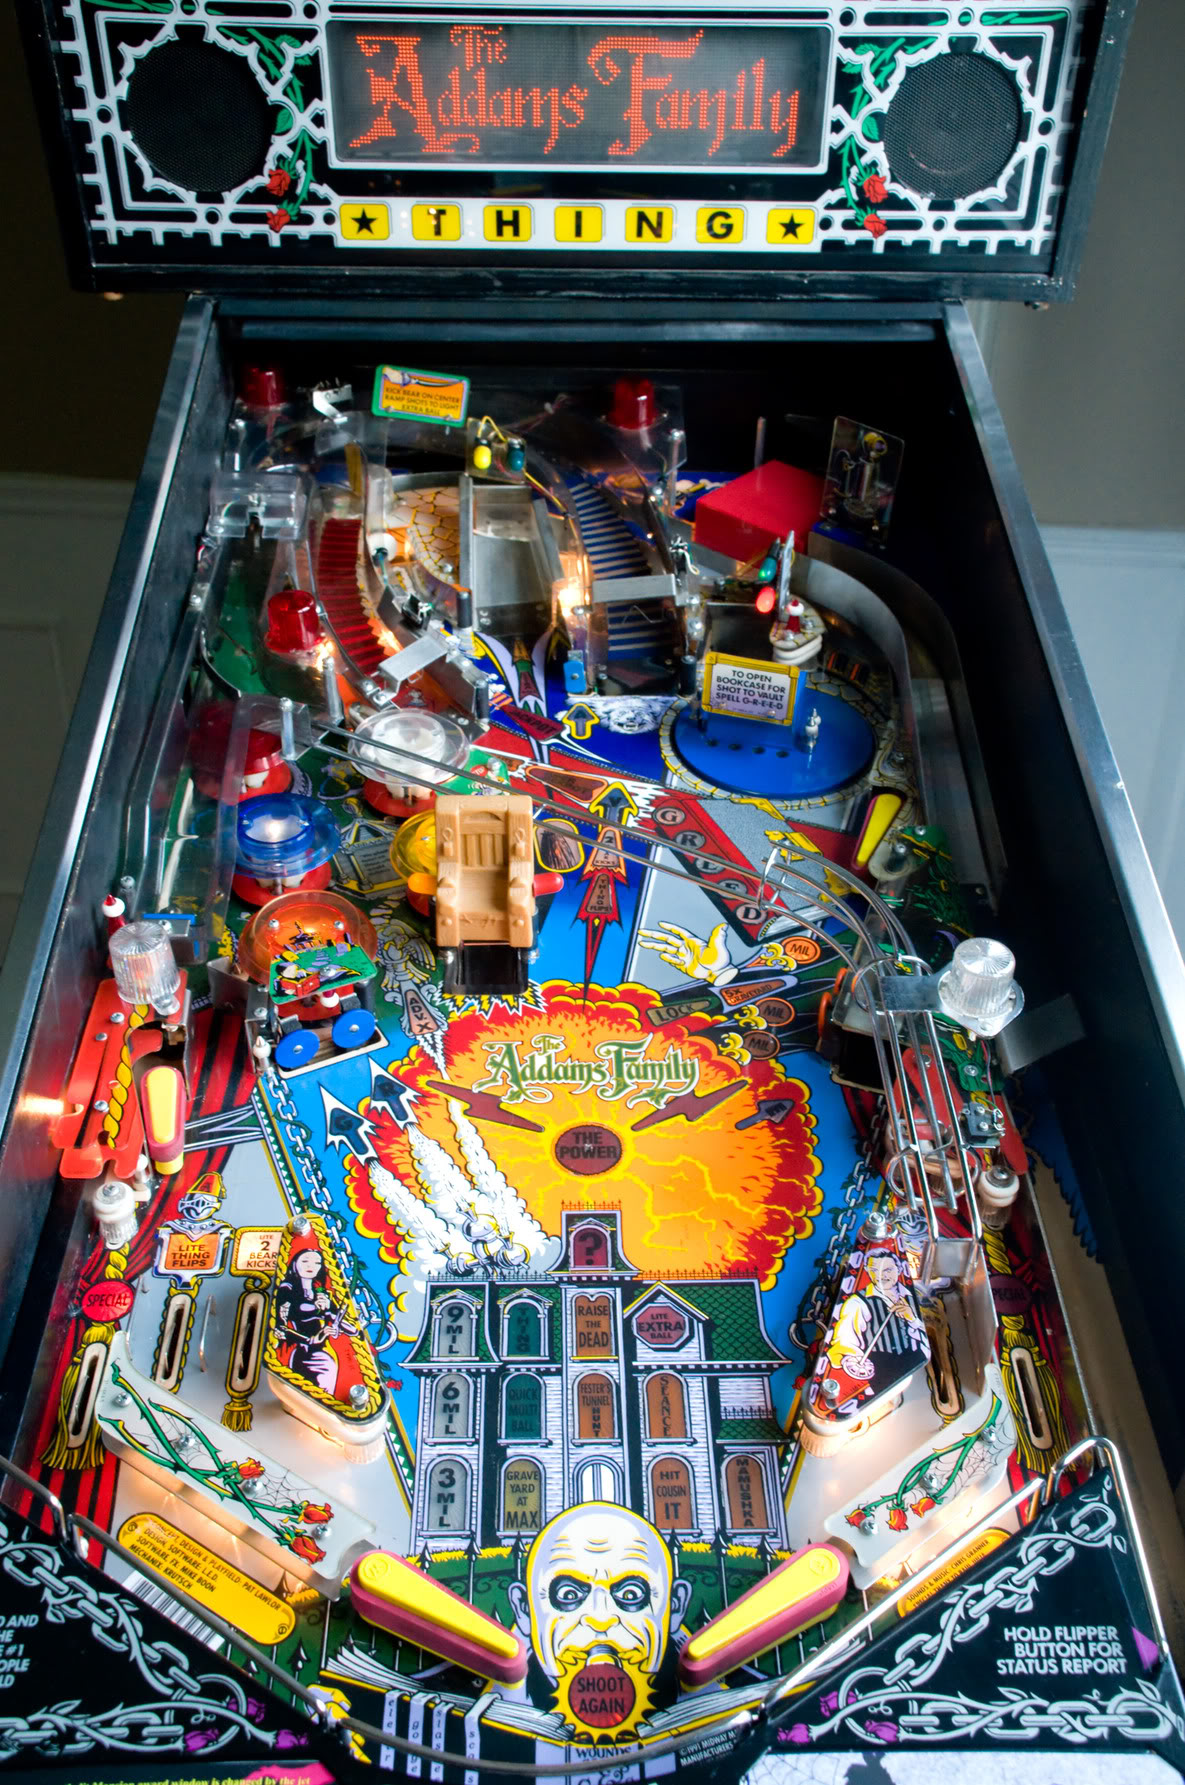 playfield_large THE ADAMS FAMILY